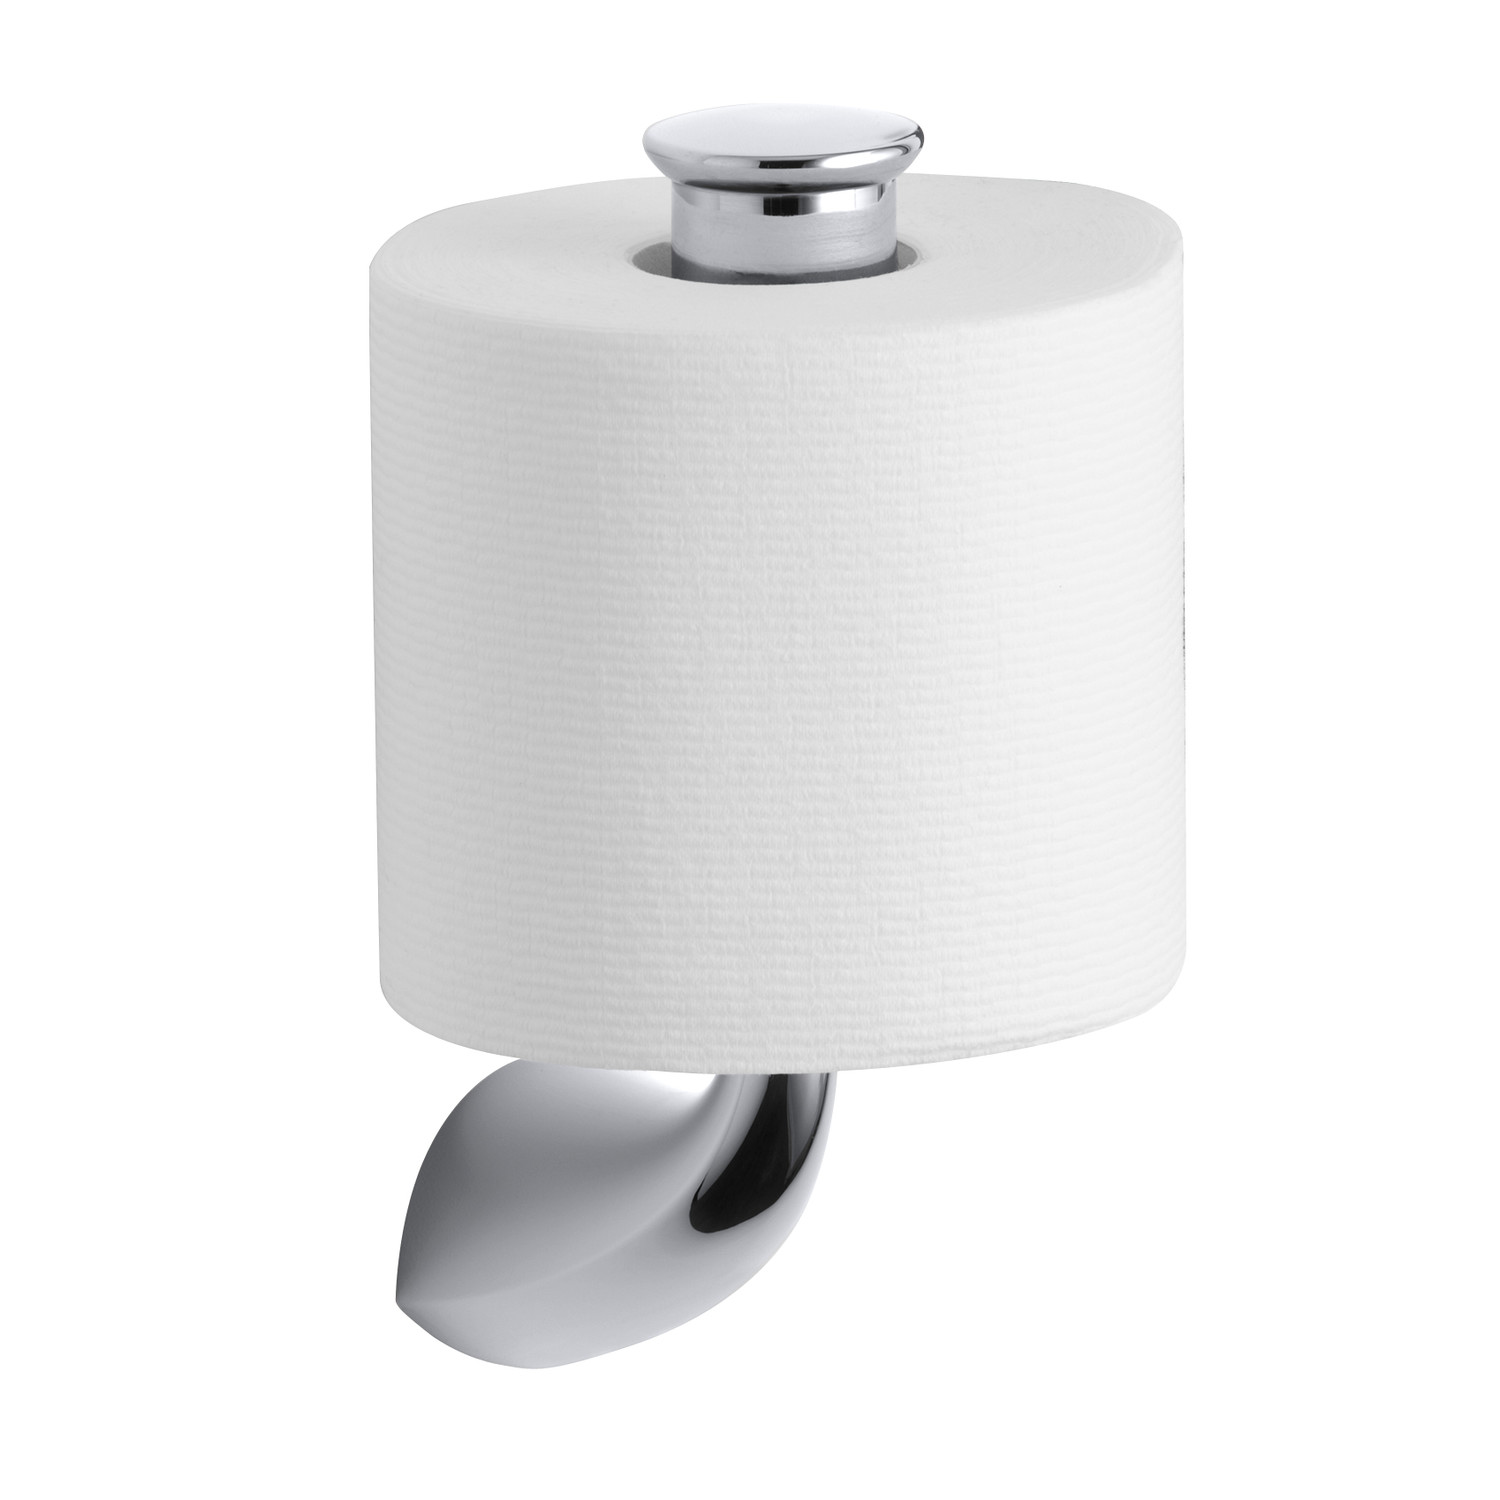 Tp Dispenser The Vertical Toilet Paper Holders That Are Ideal For Your